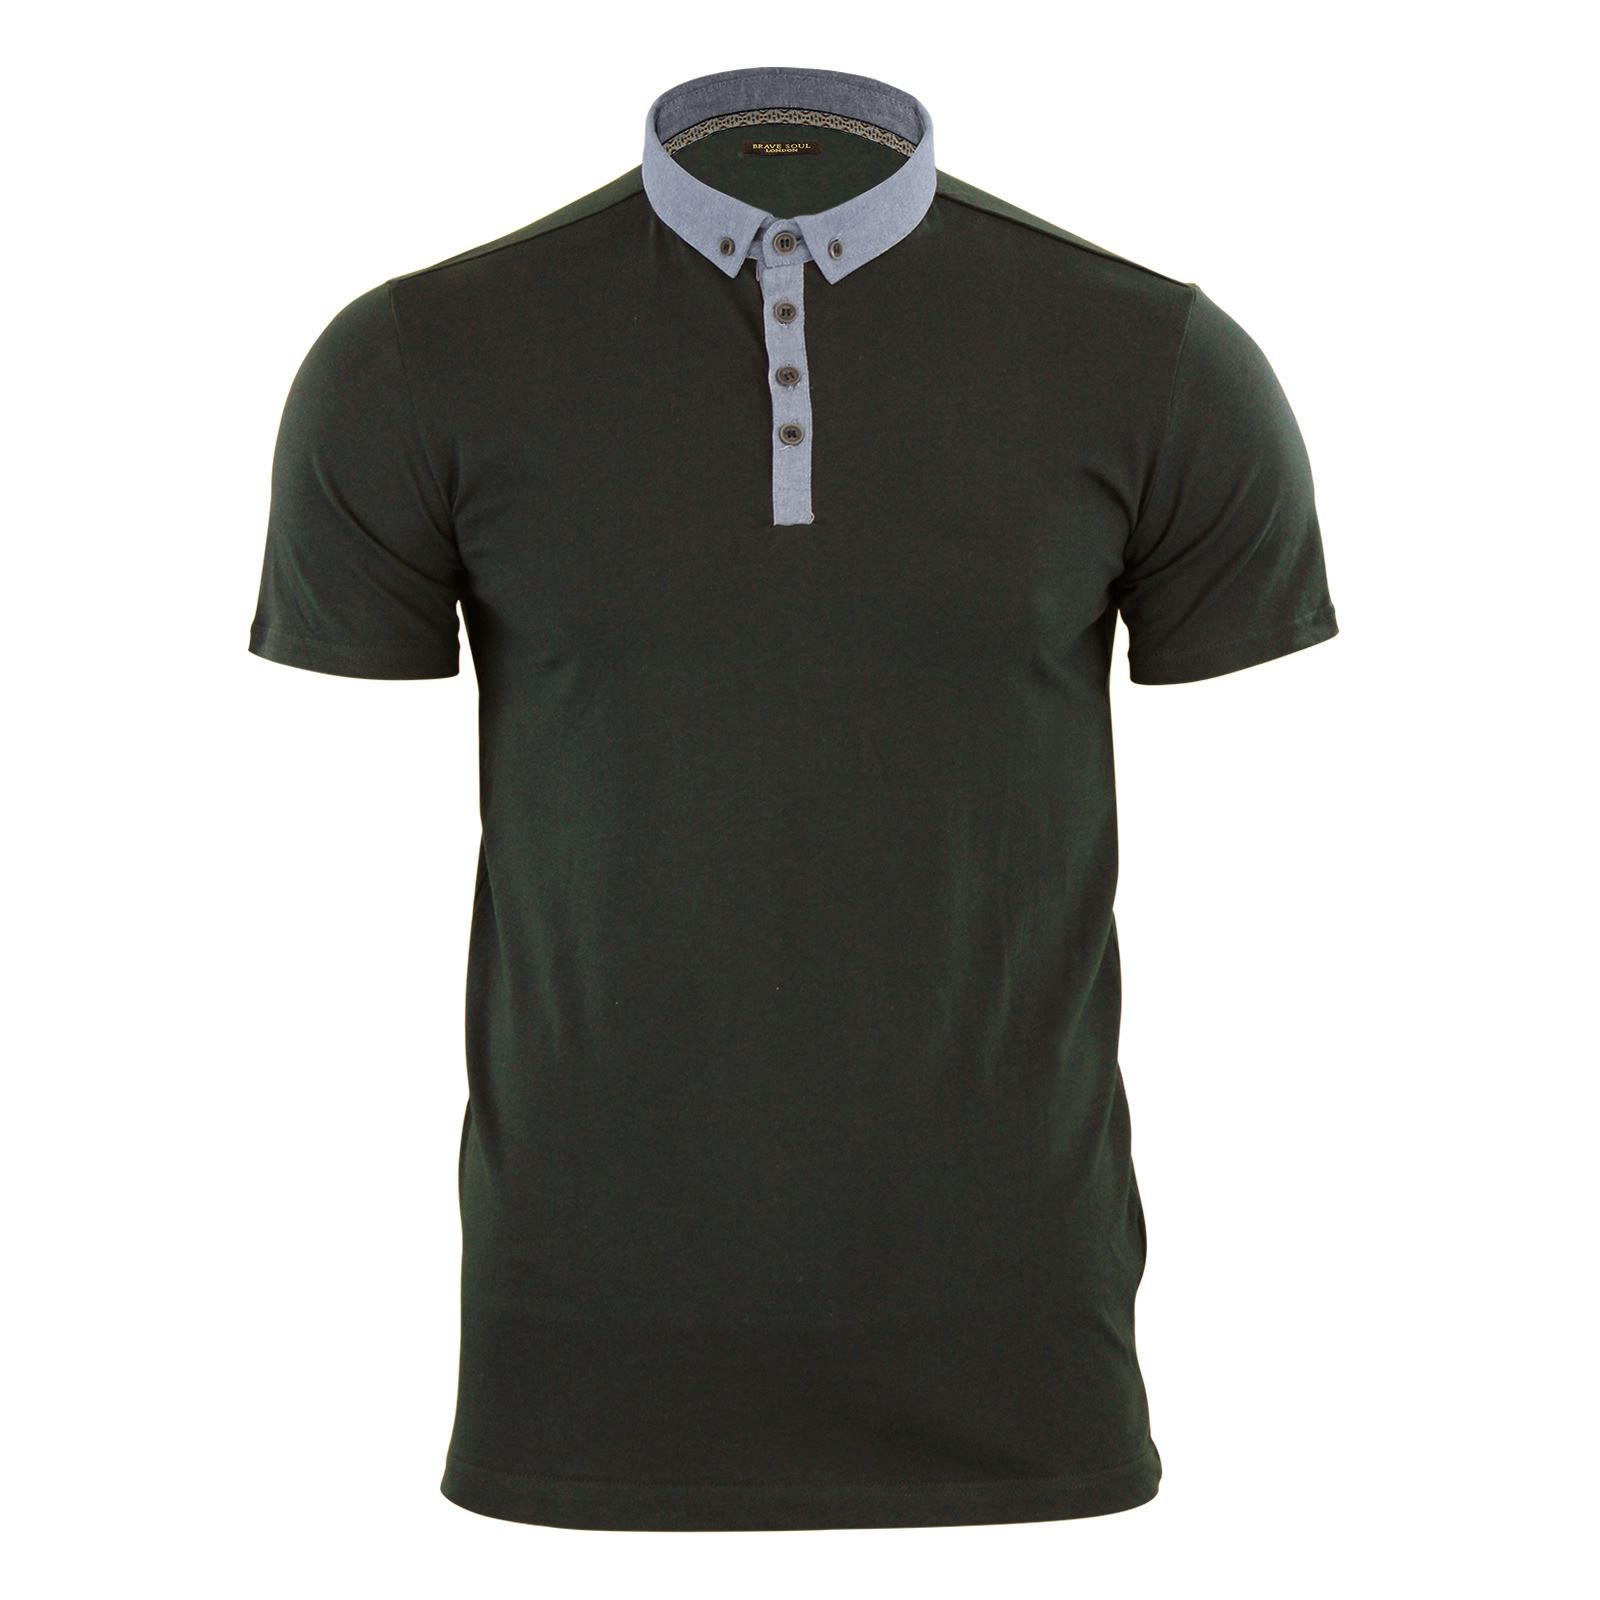 Mens-Polo-T-Shirt-Brave-Soul-Glover-Cotton-Collared-Short-Sleeve-Casual-Top thumbnail 33